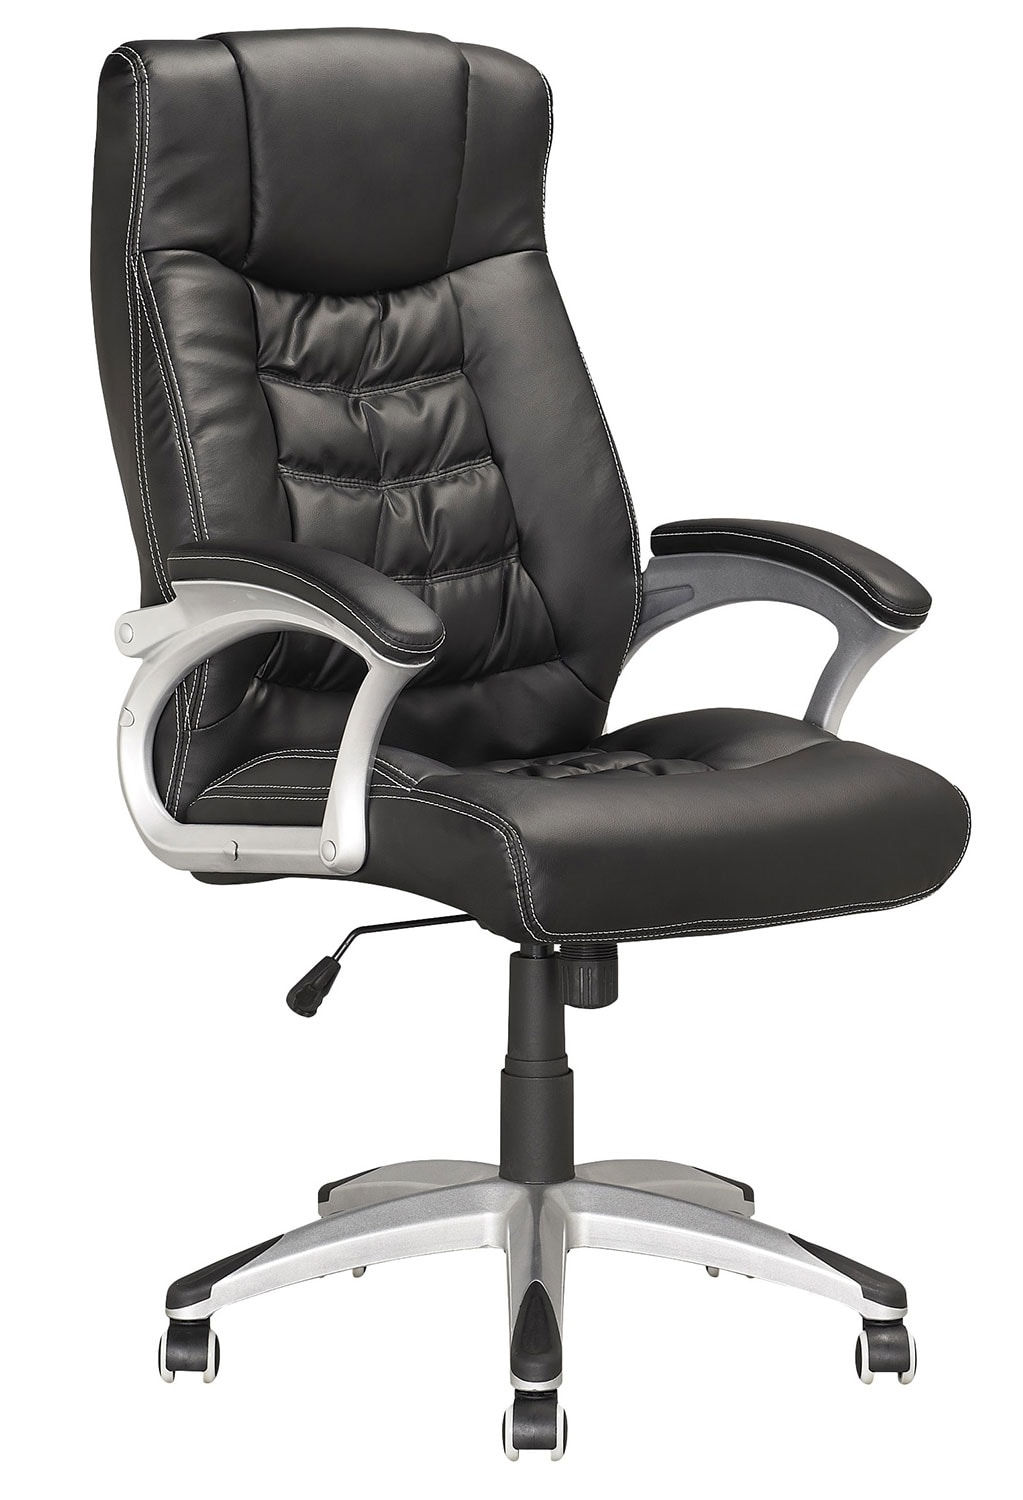 Tampa Foam-Padded Leatherette Executive Office Chair